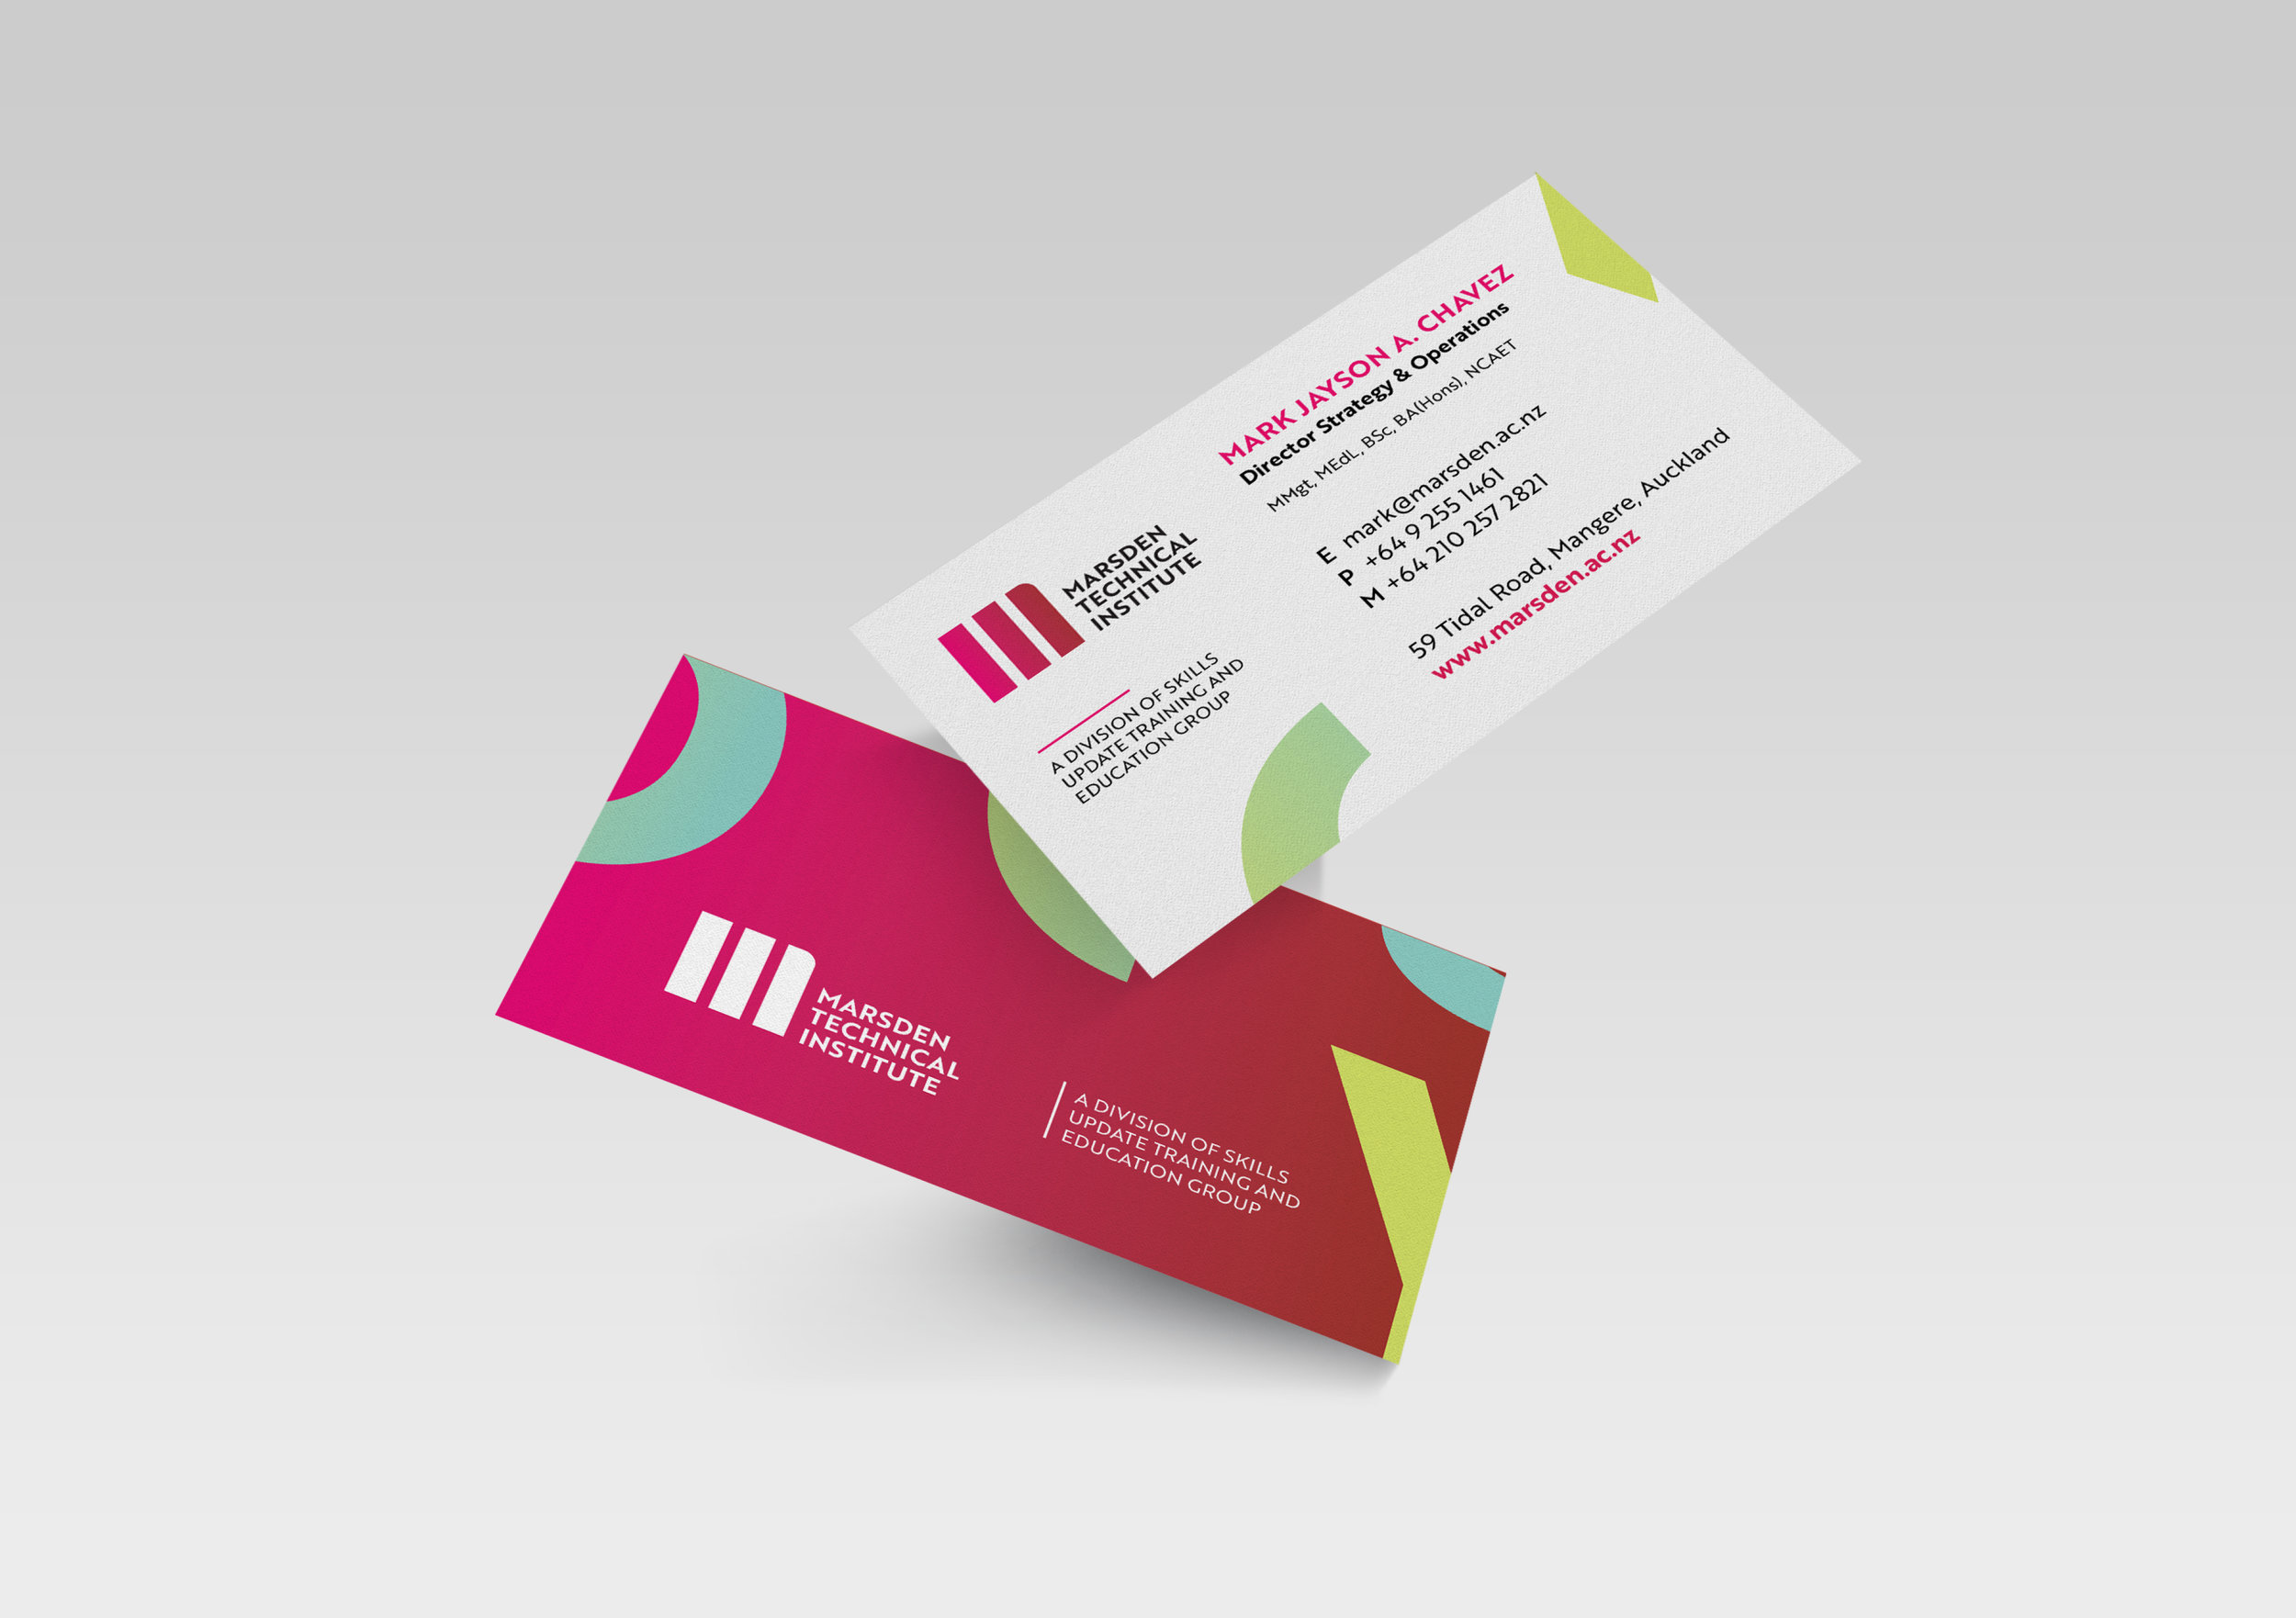 Marsden business card